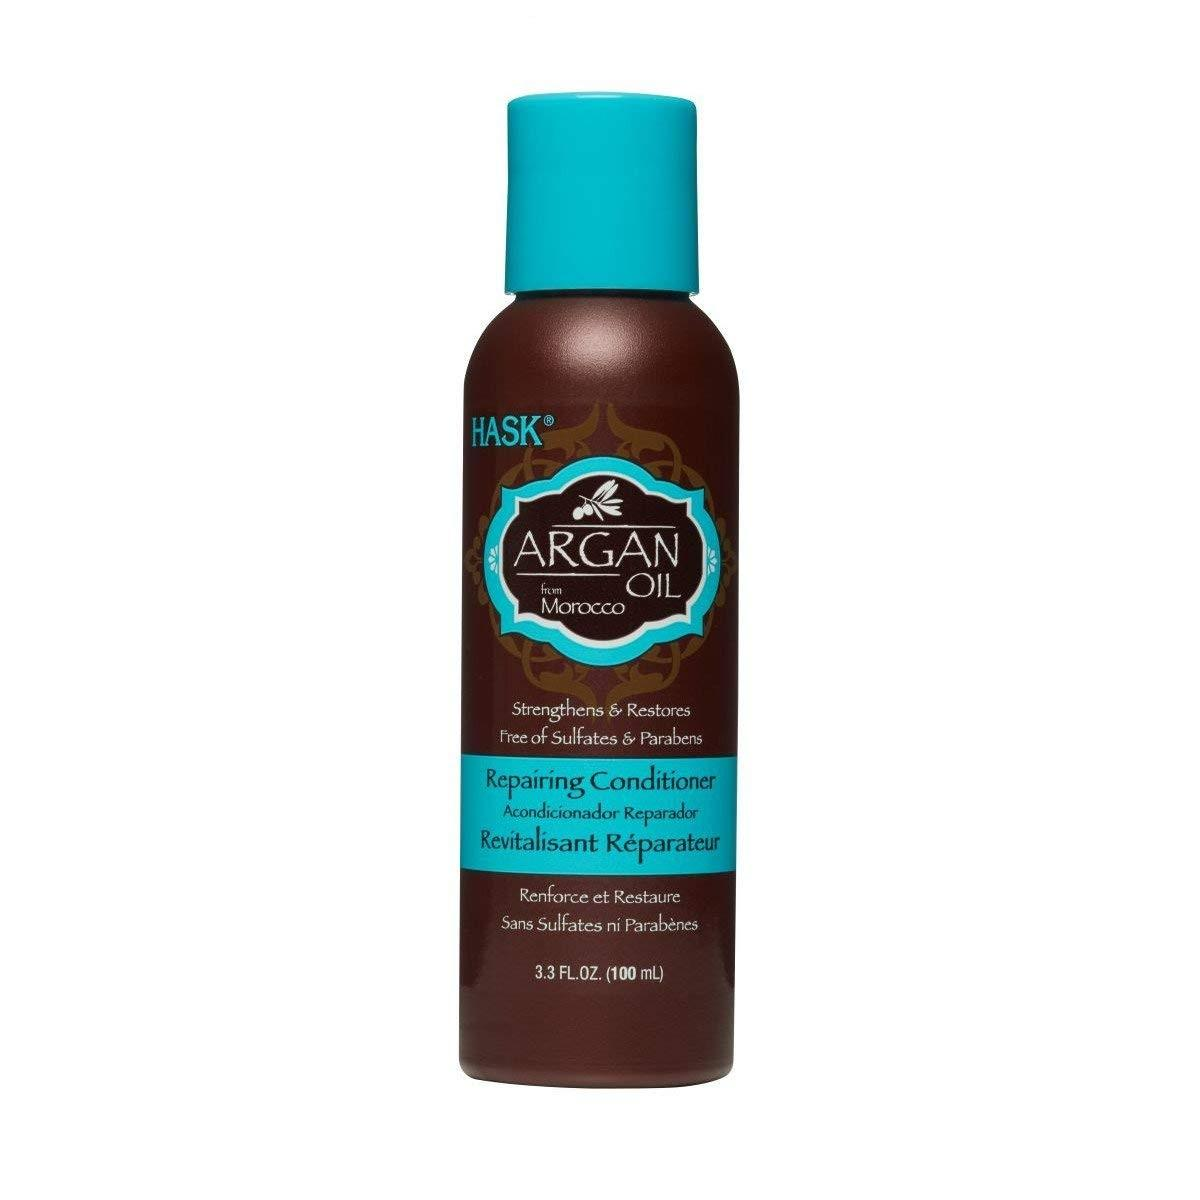 Hask Argan Oil Repairing Conditioner 3.3 Oz. Travel Size